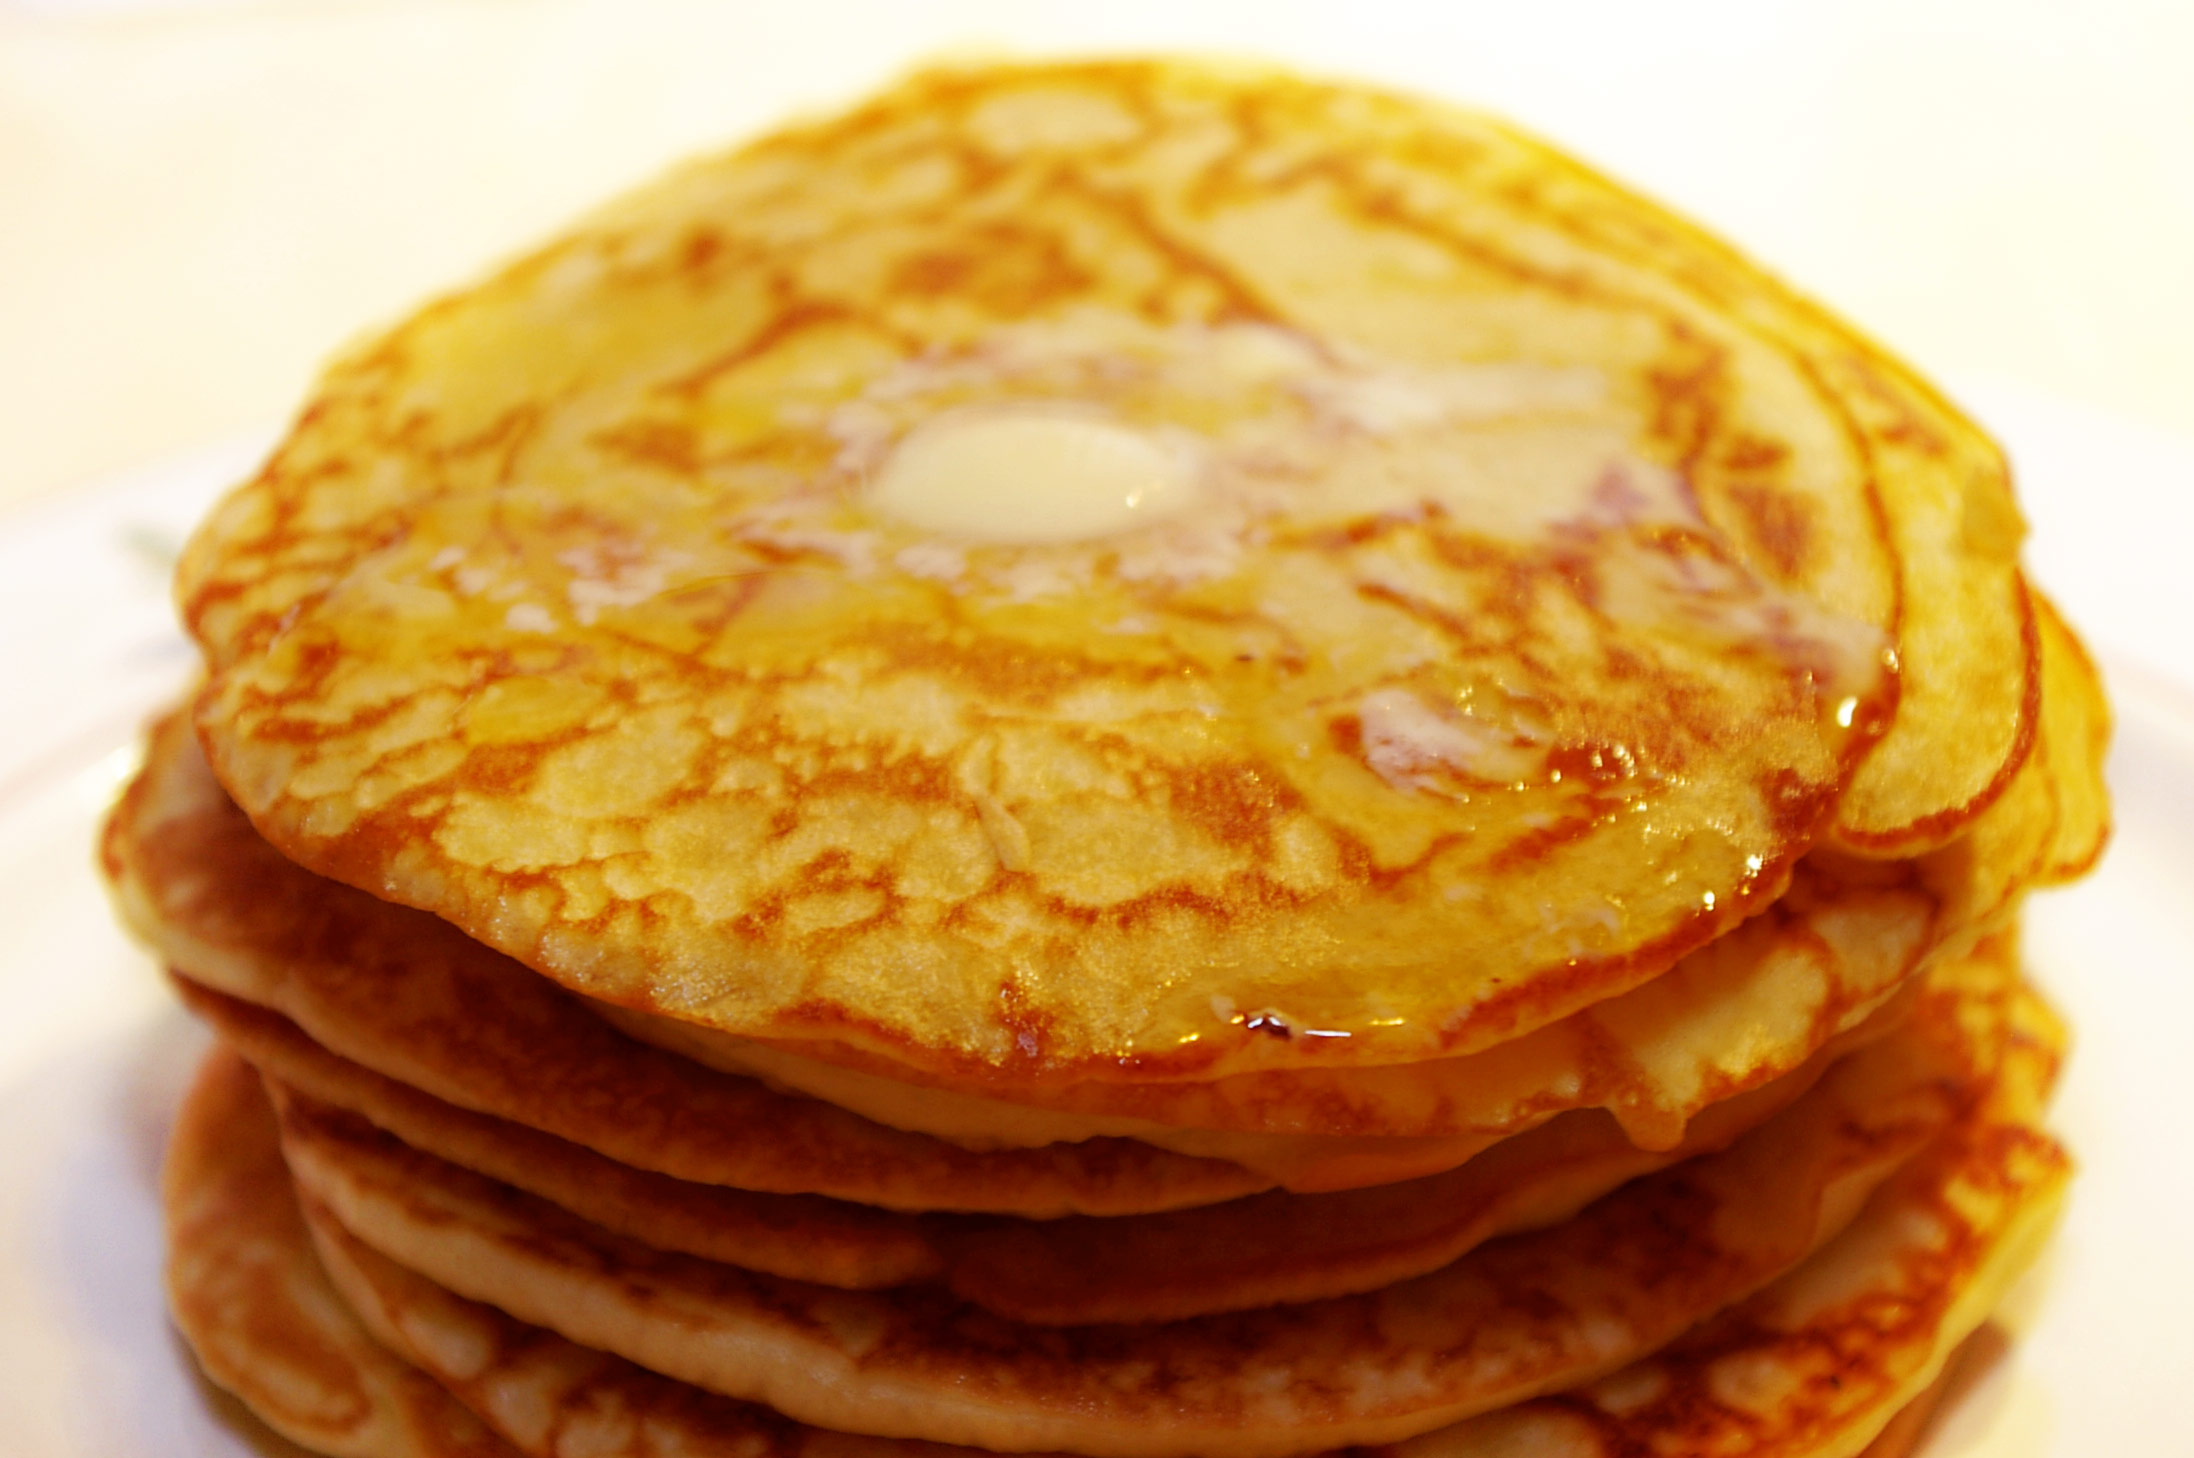 Pancakes shown may not be actual Sweet Potato Pancakes.